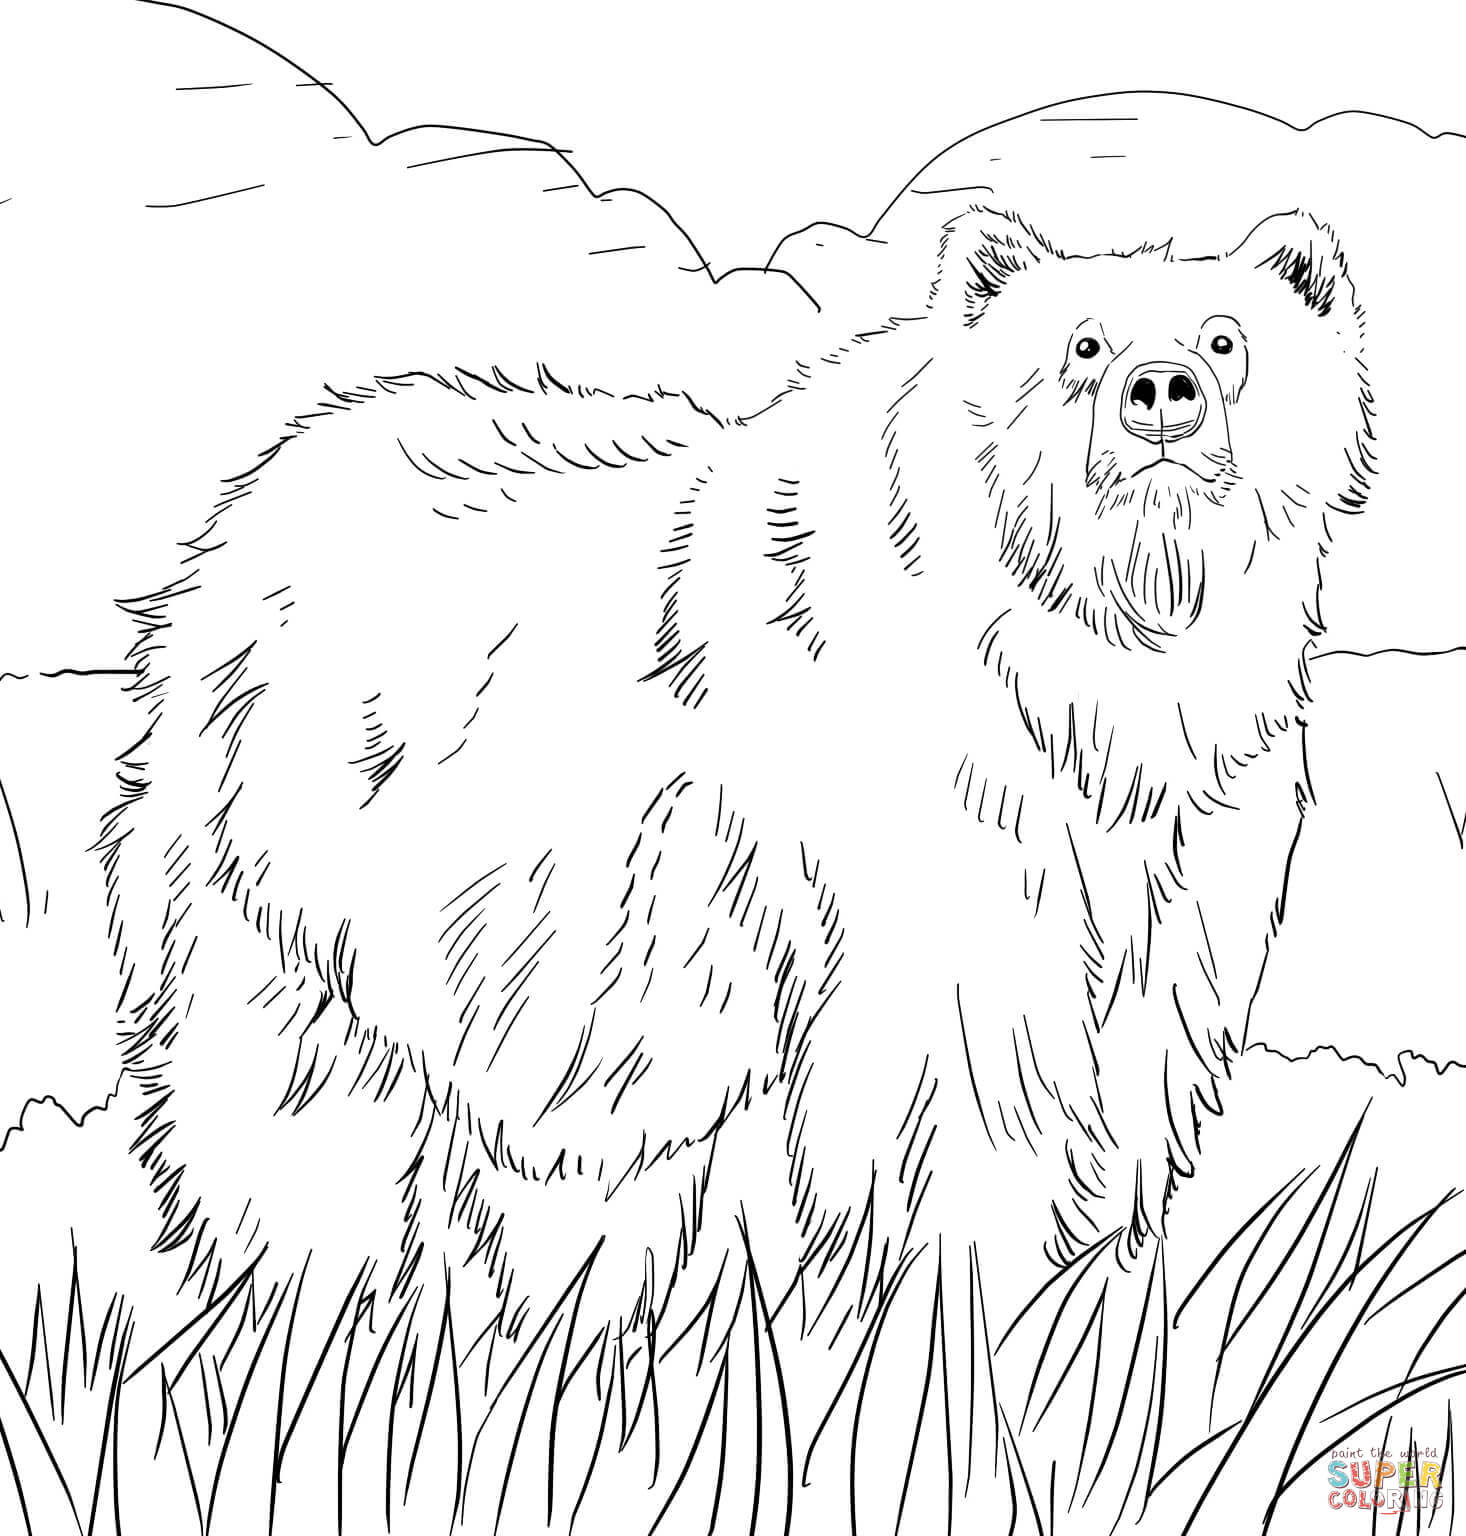 coloring pages of bears bear coloring pages coloring pages to download and print bears coloring of pages